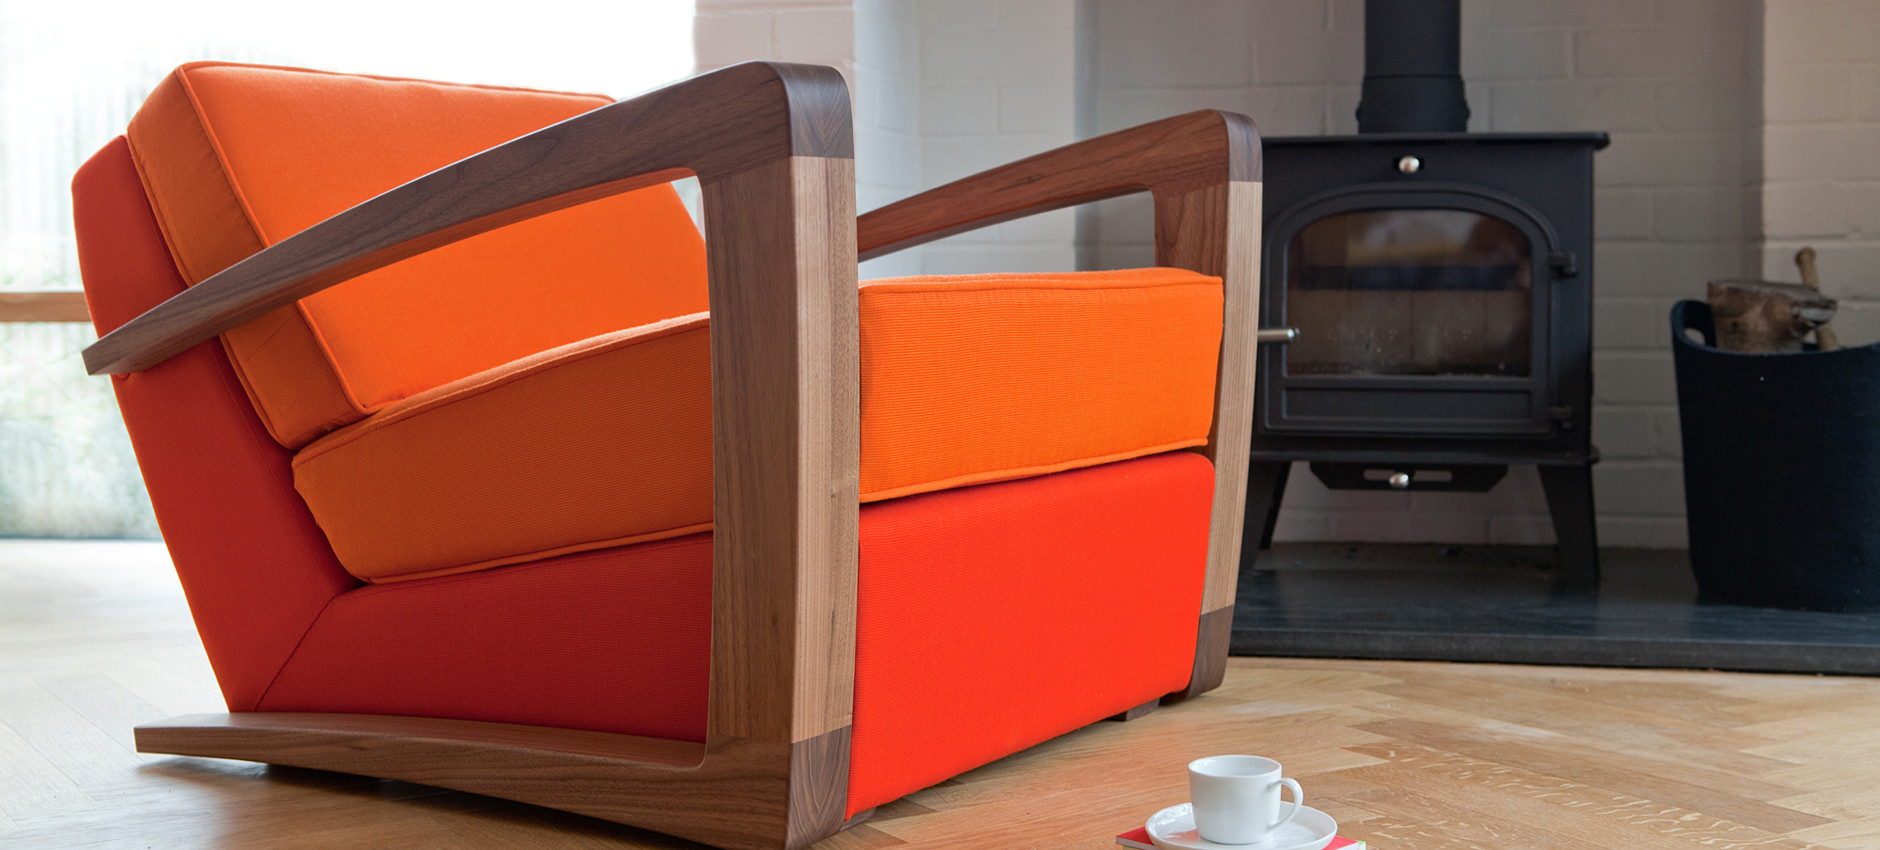 Bark Furniture British Handmade Bespoke Furniture